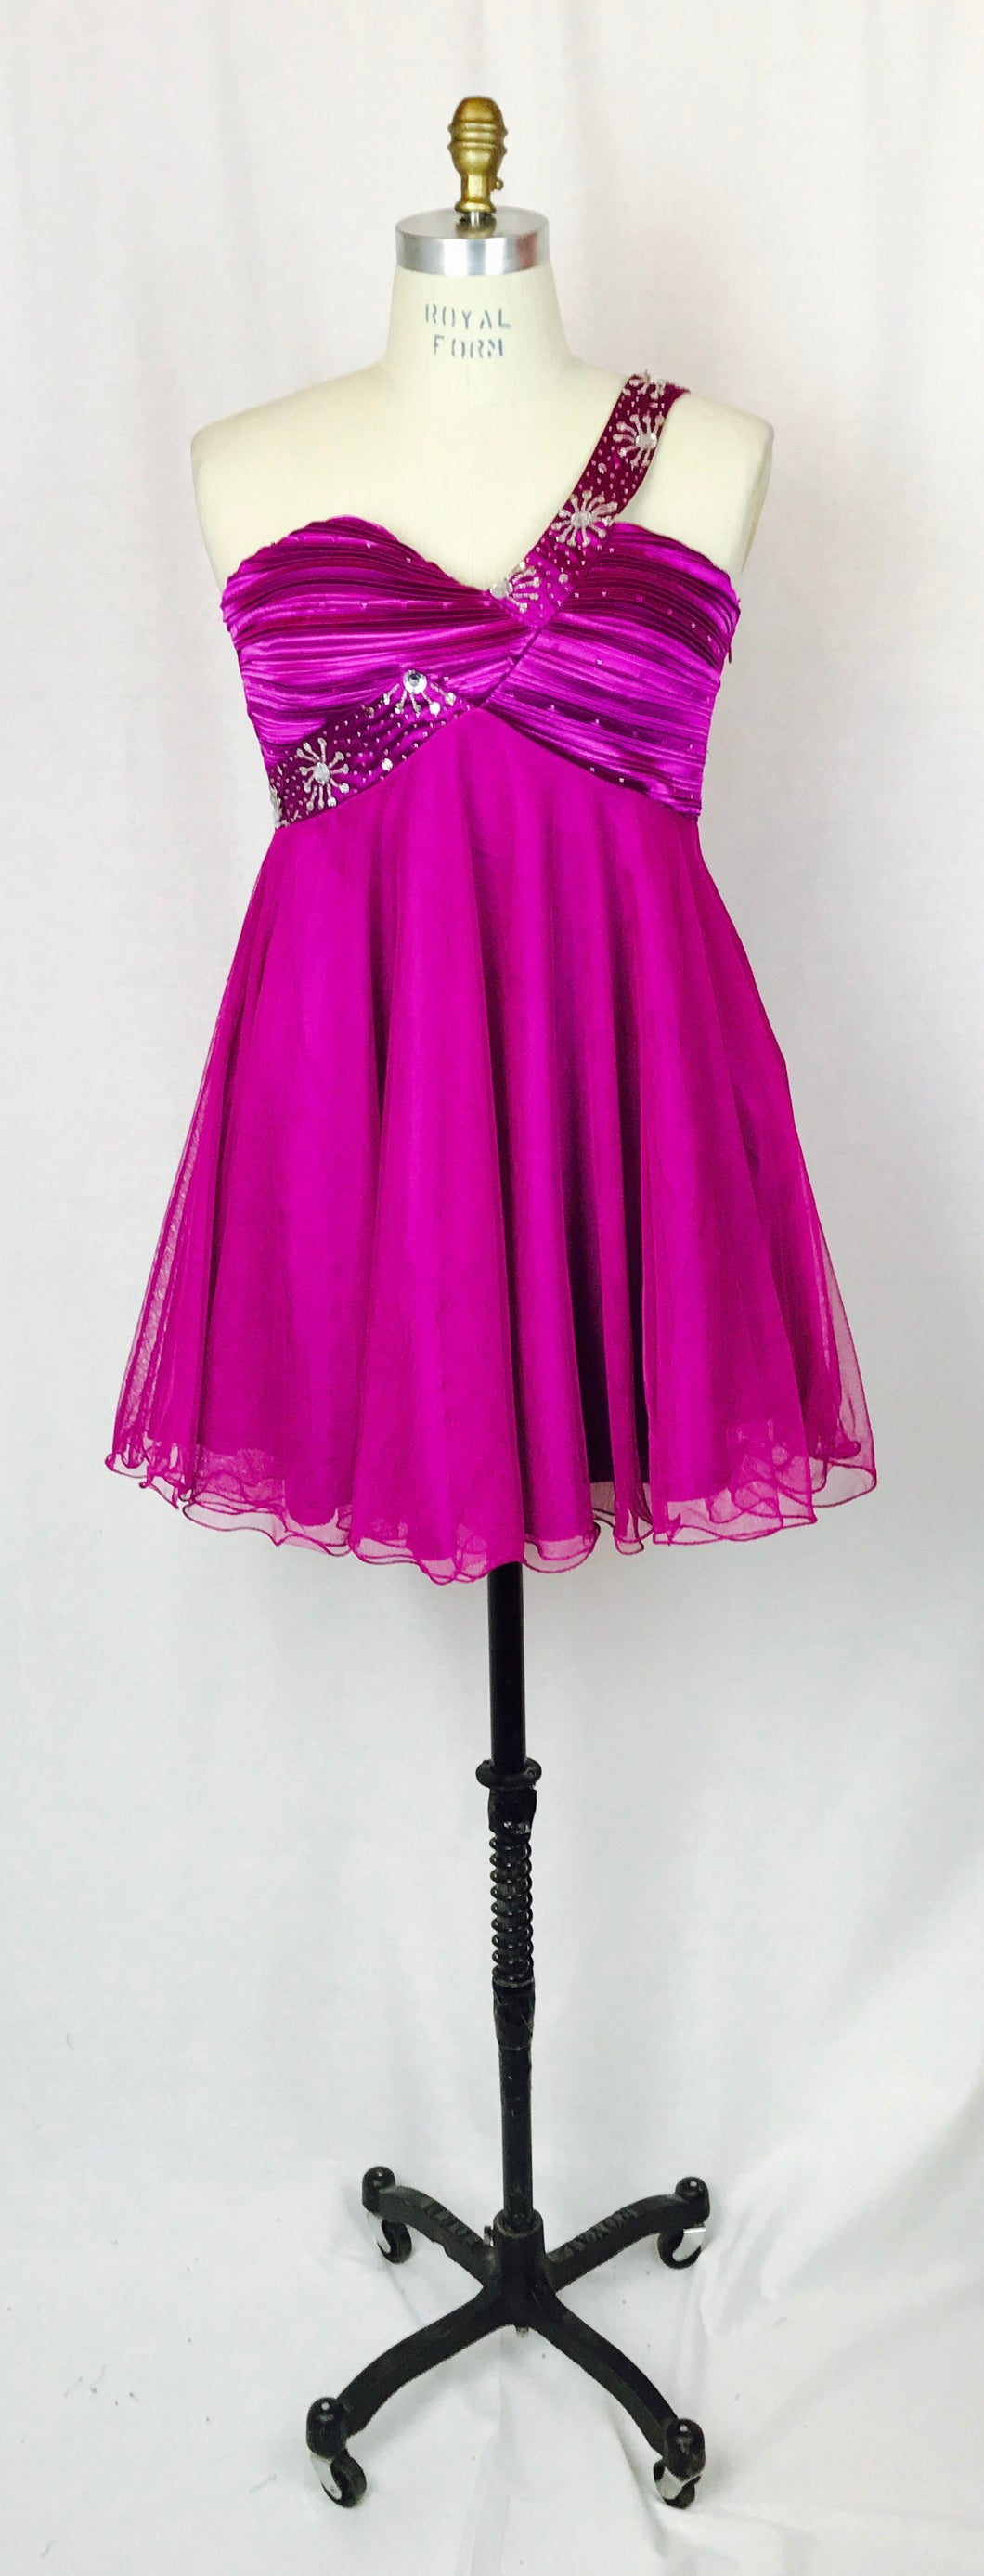 Fuchsia party dress, single shoulder, elastic backing.